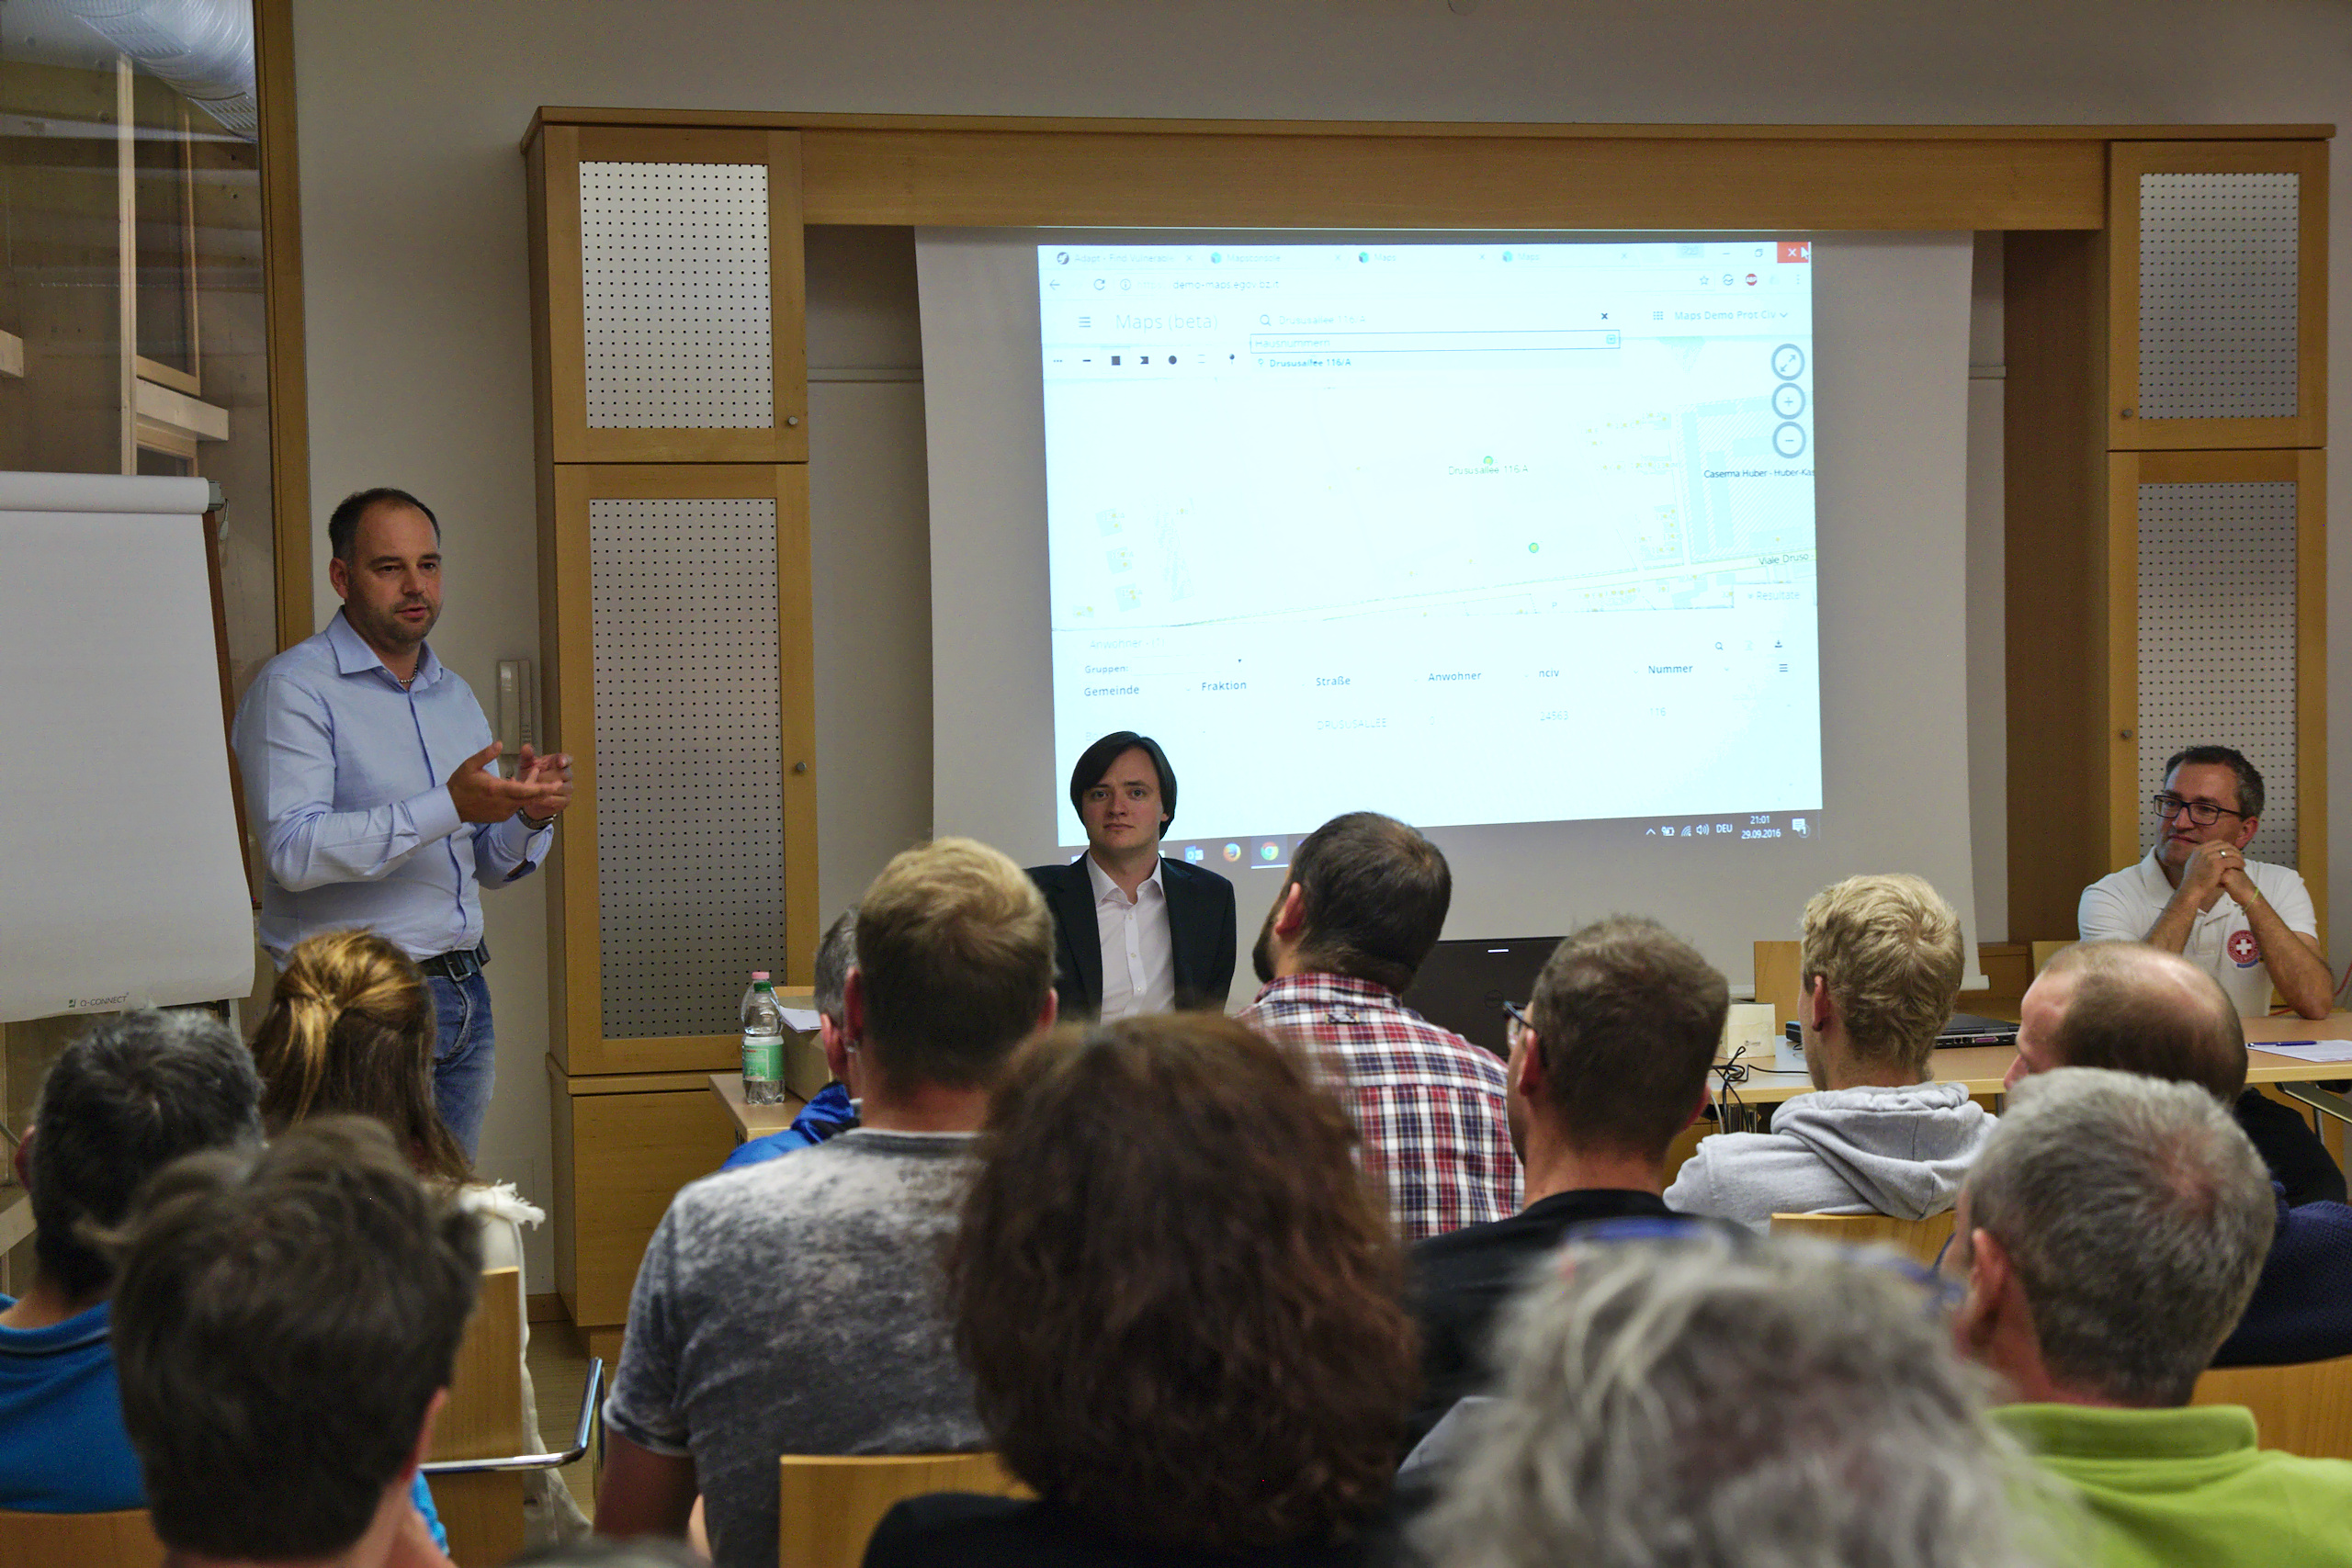 ADAPT project gathers stakeholder feedback at meeting in Klausen